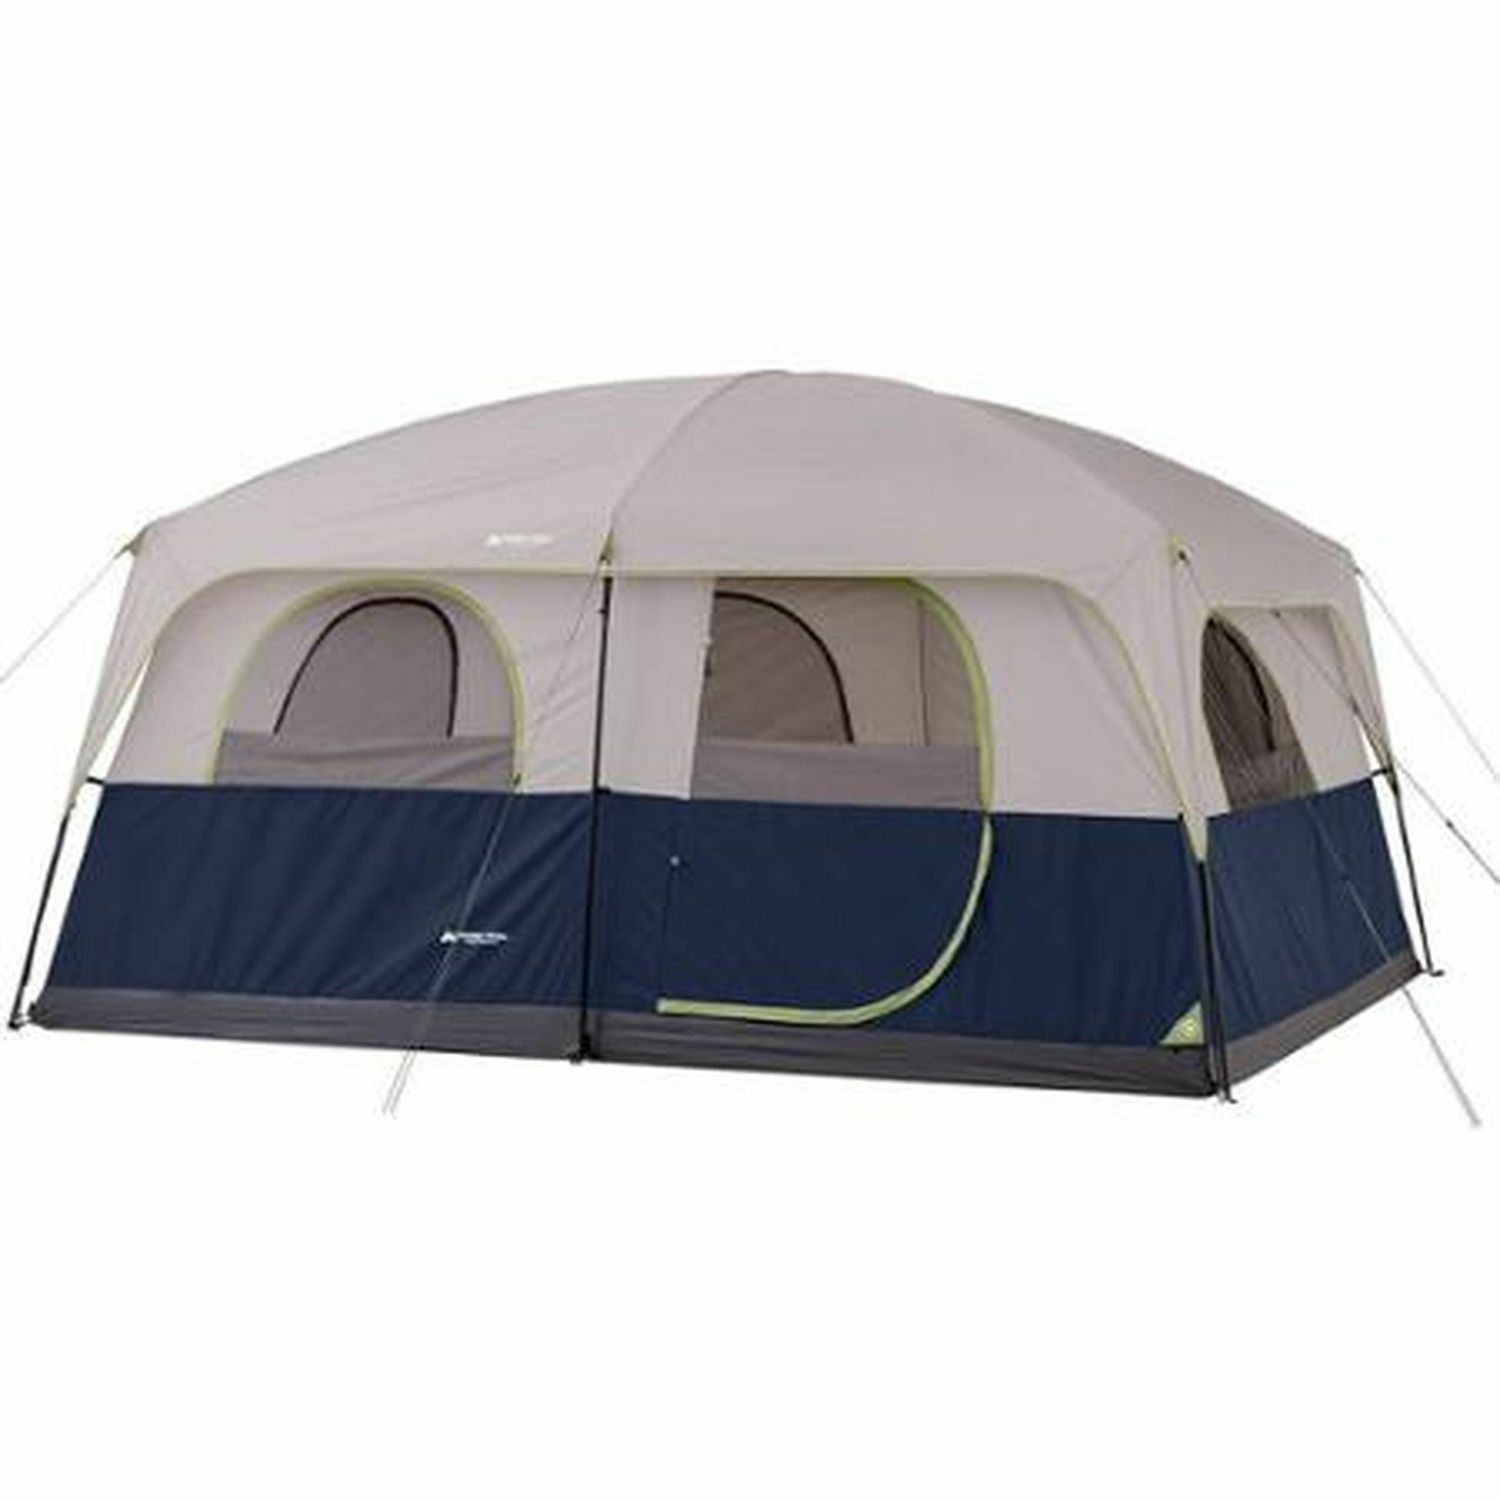 Camping Trail WMT-141086 10 Person Cabin Tent - bluee outdoors canopies outdoors